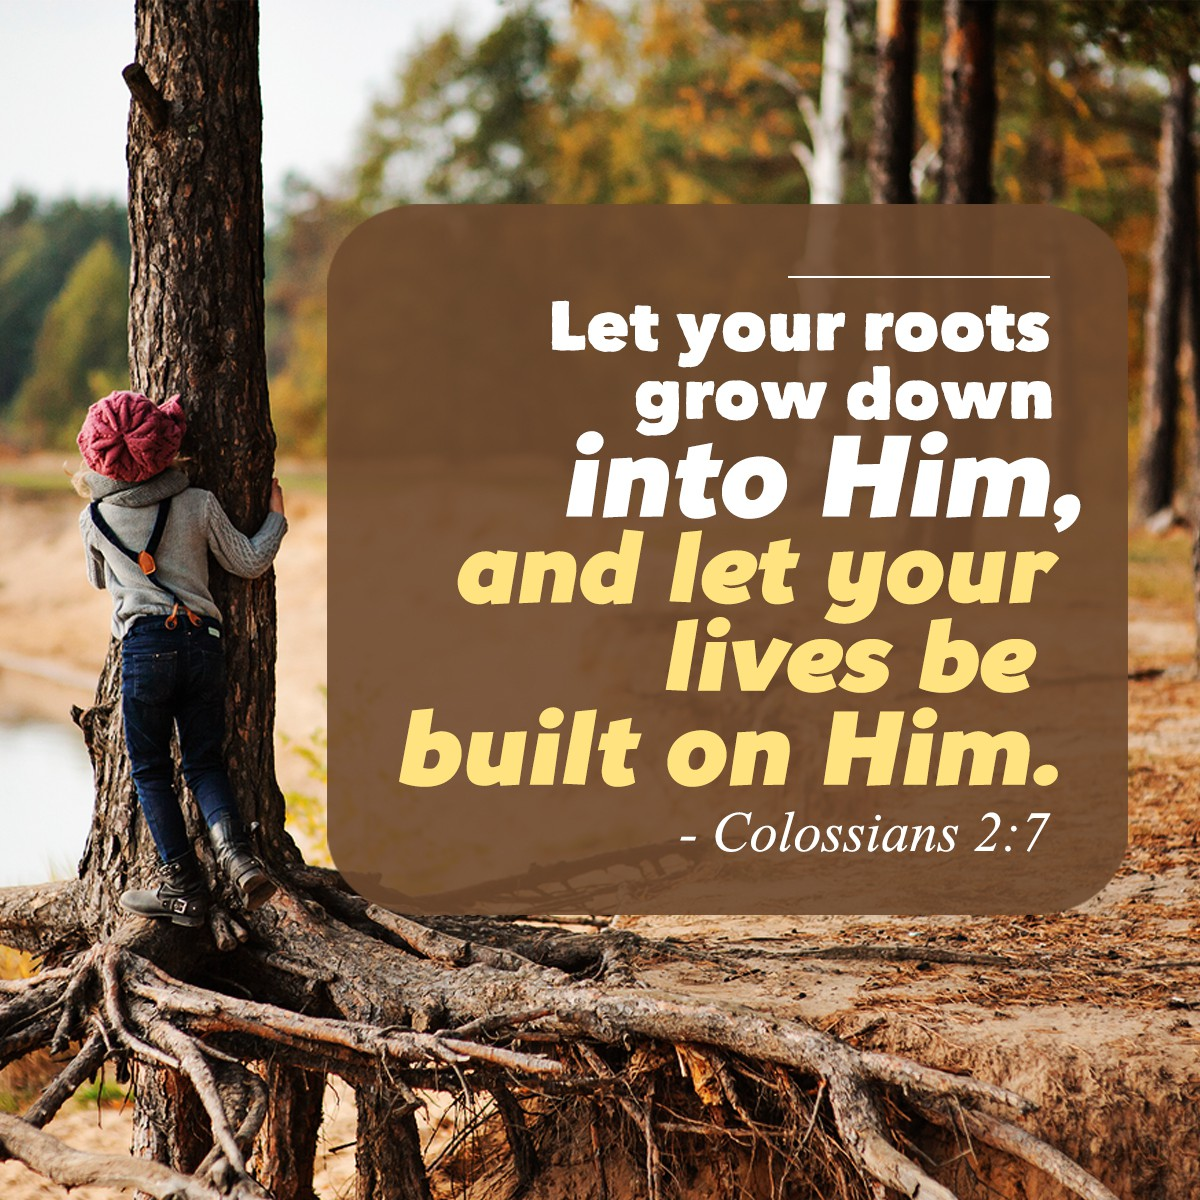 Let your roots grow down into Him Col. 2:7